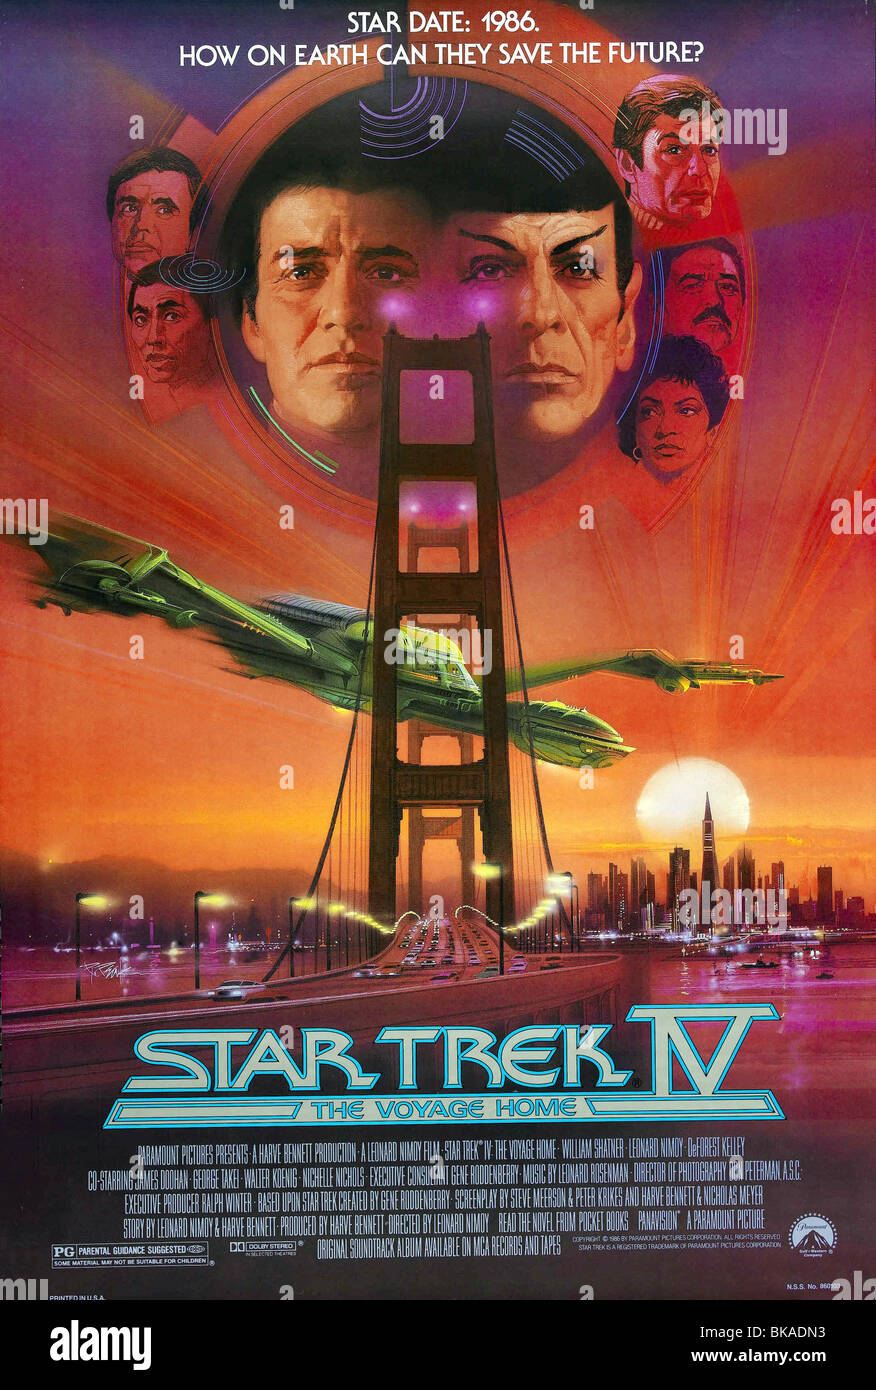 Star Trek IV: The Voyage Home  Year : 1986 - USA Director : Leonard Nimoy Movie poster (USA) - Stock Image